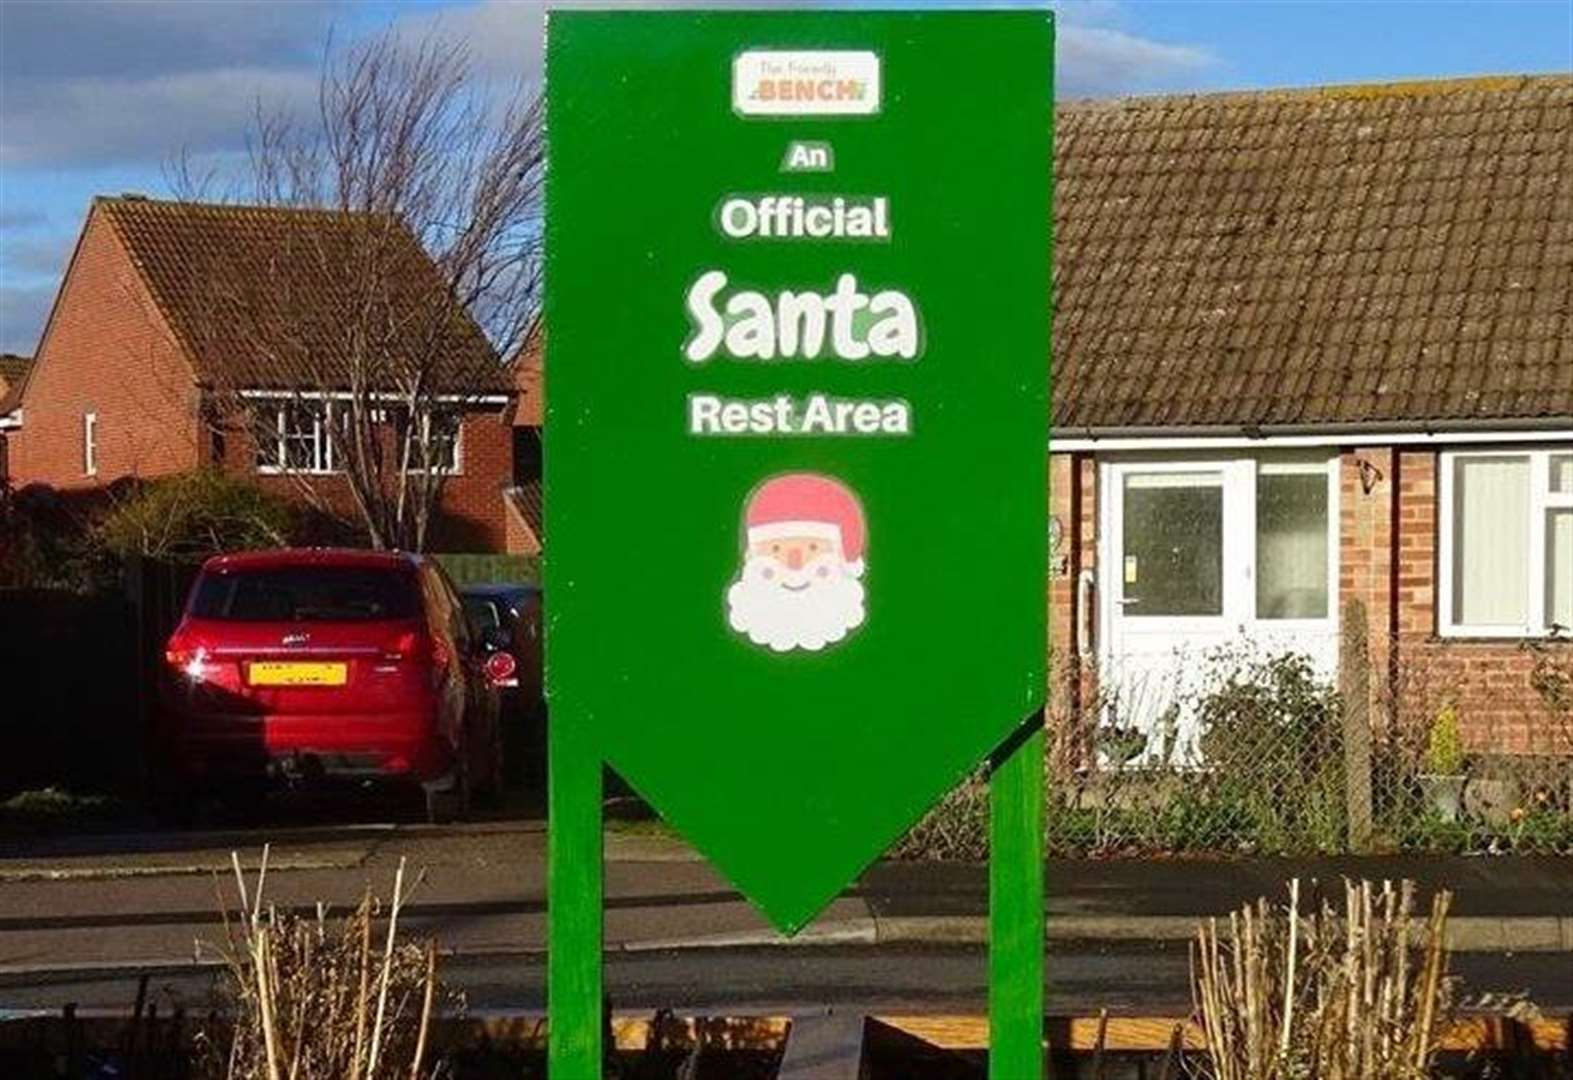 Santa is offered a place to rest at Bottesford's Friendly Bench